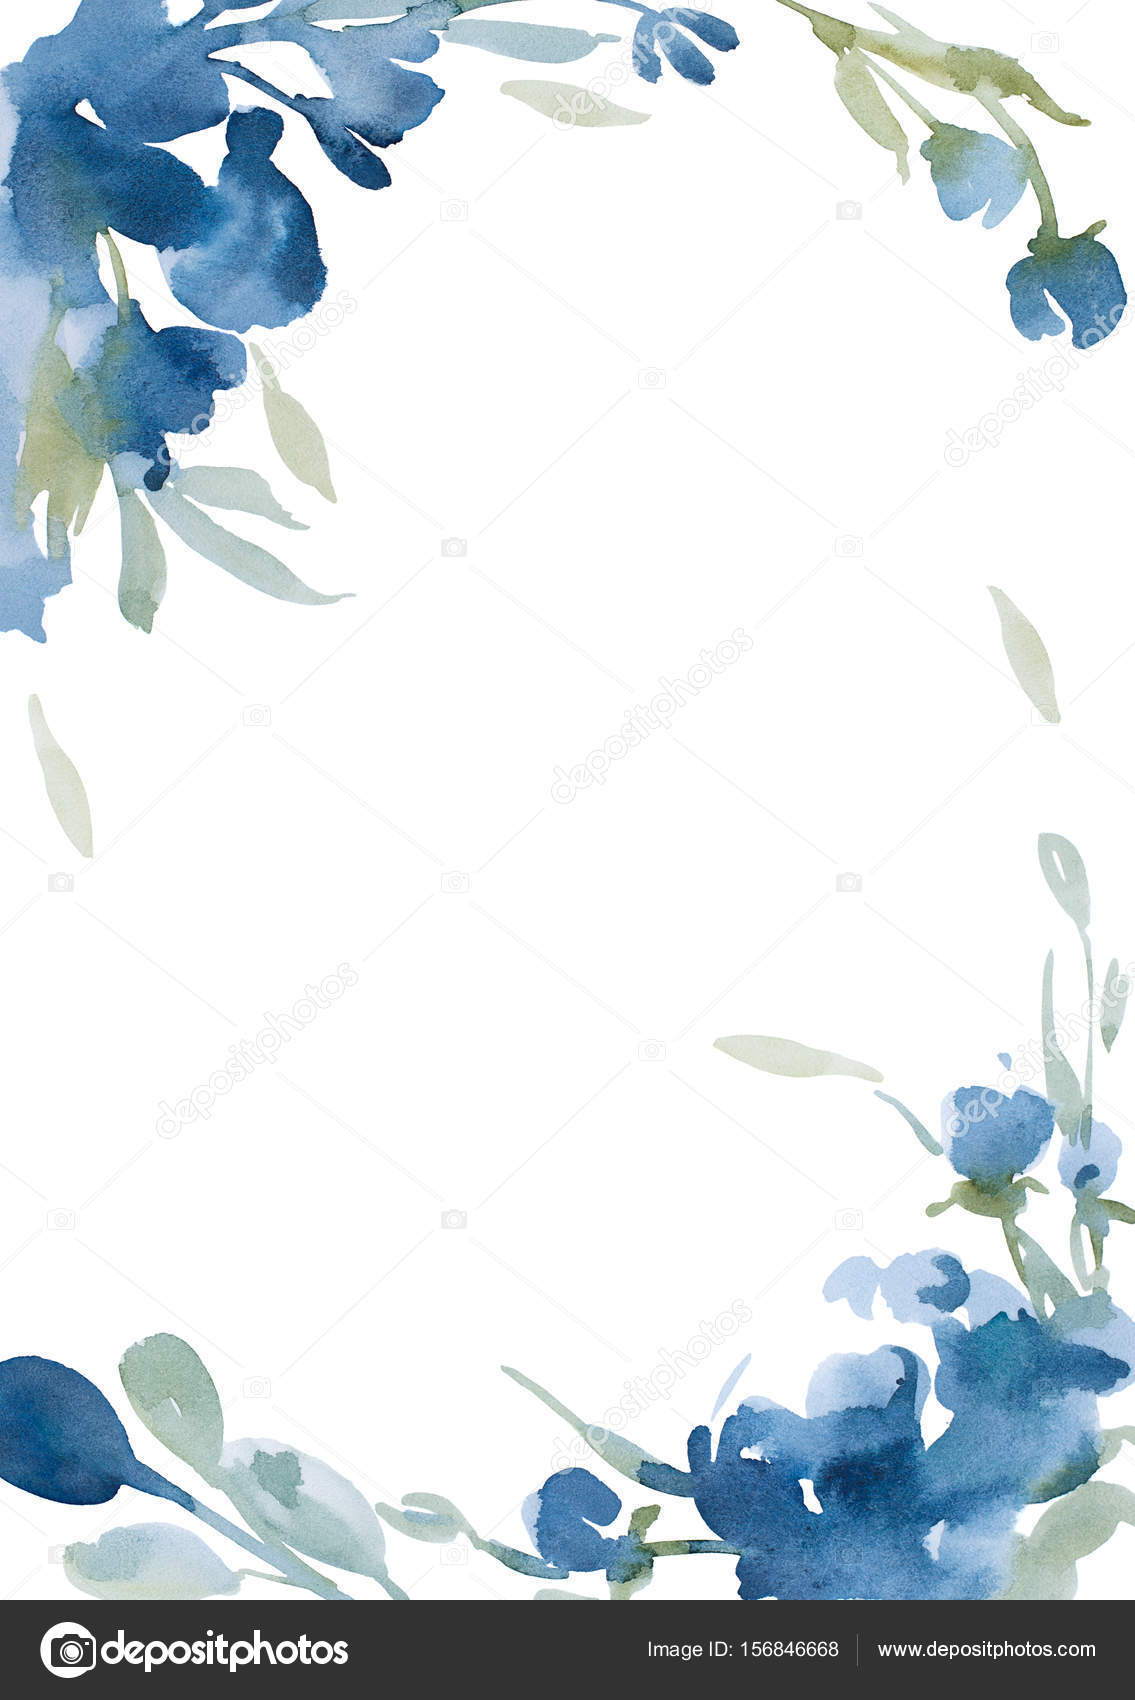 watercolor blue flowers with gray grass on white